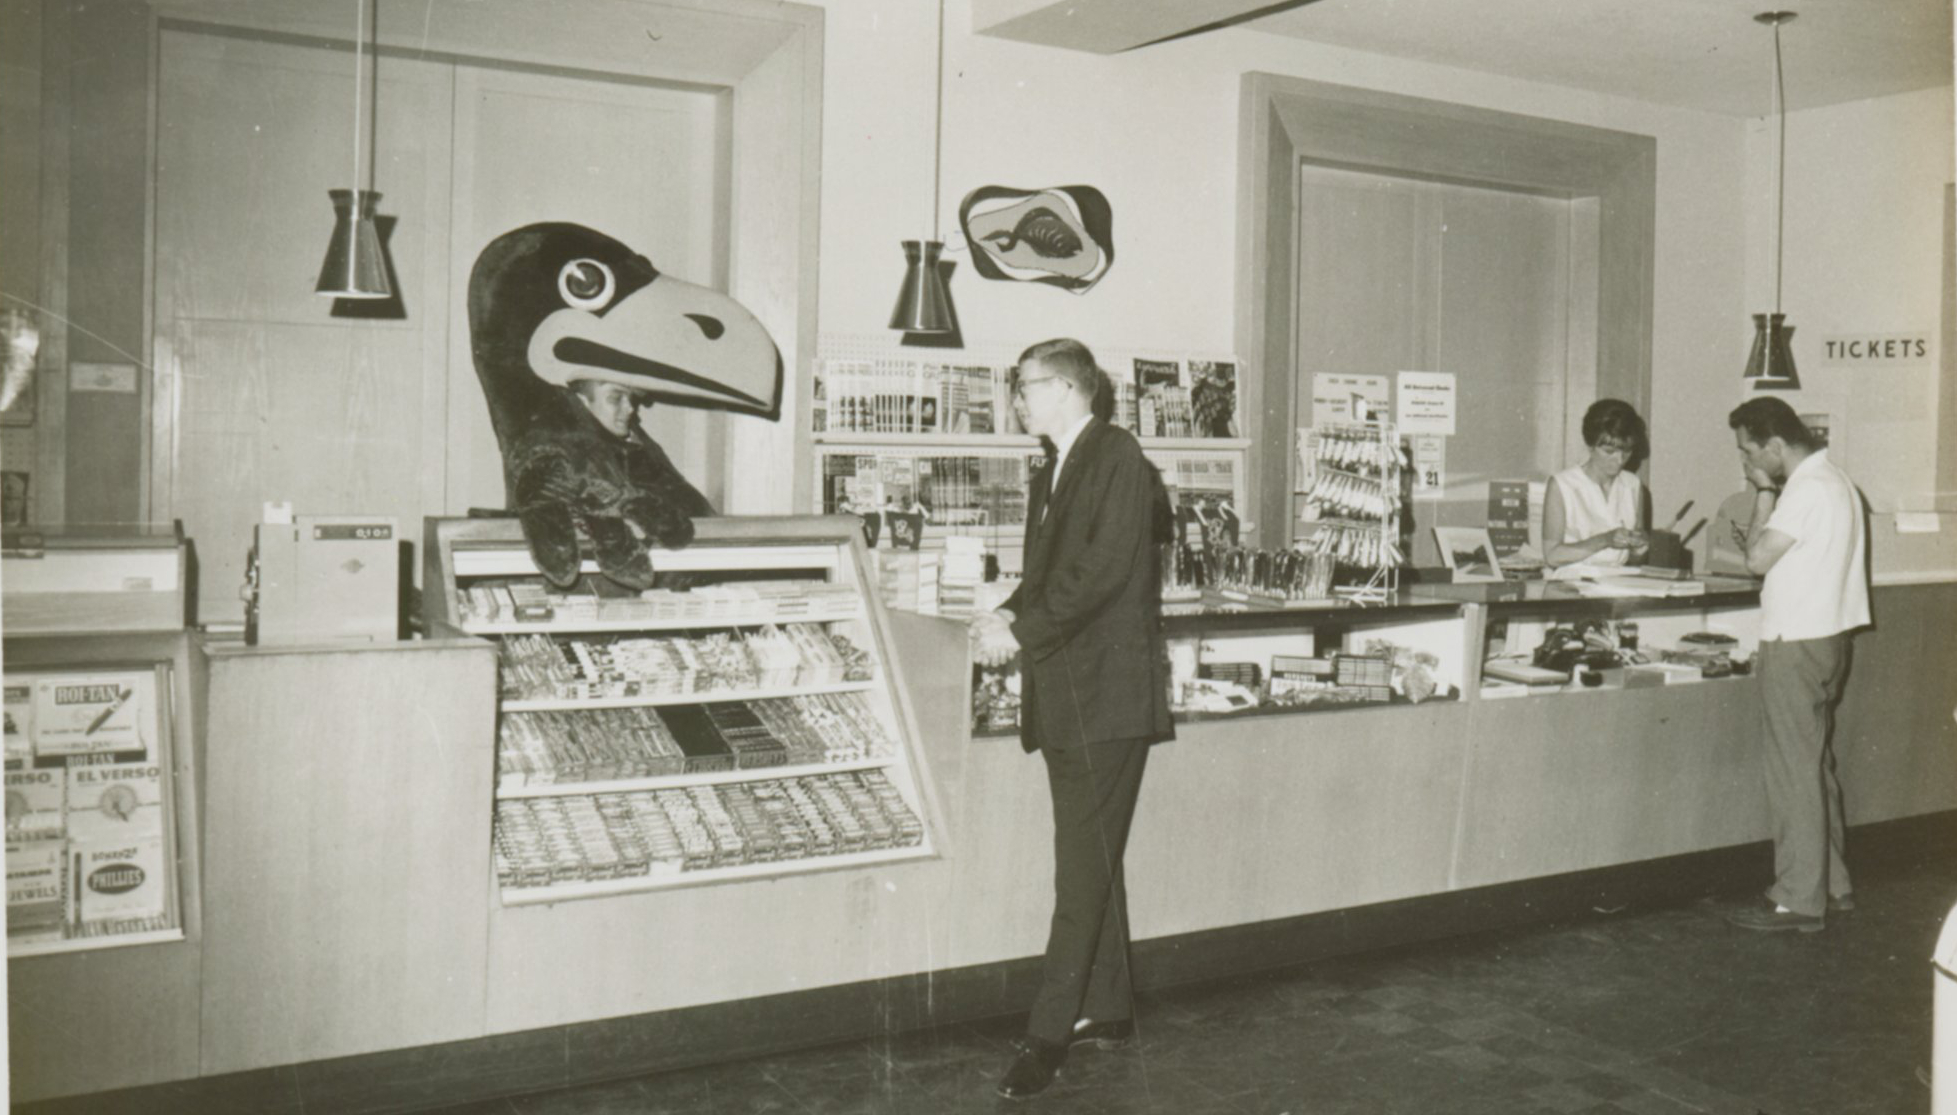 Jayhawk mascot hanging out behind the counter in the Union bookstore, 1963-1964.